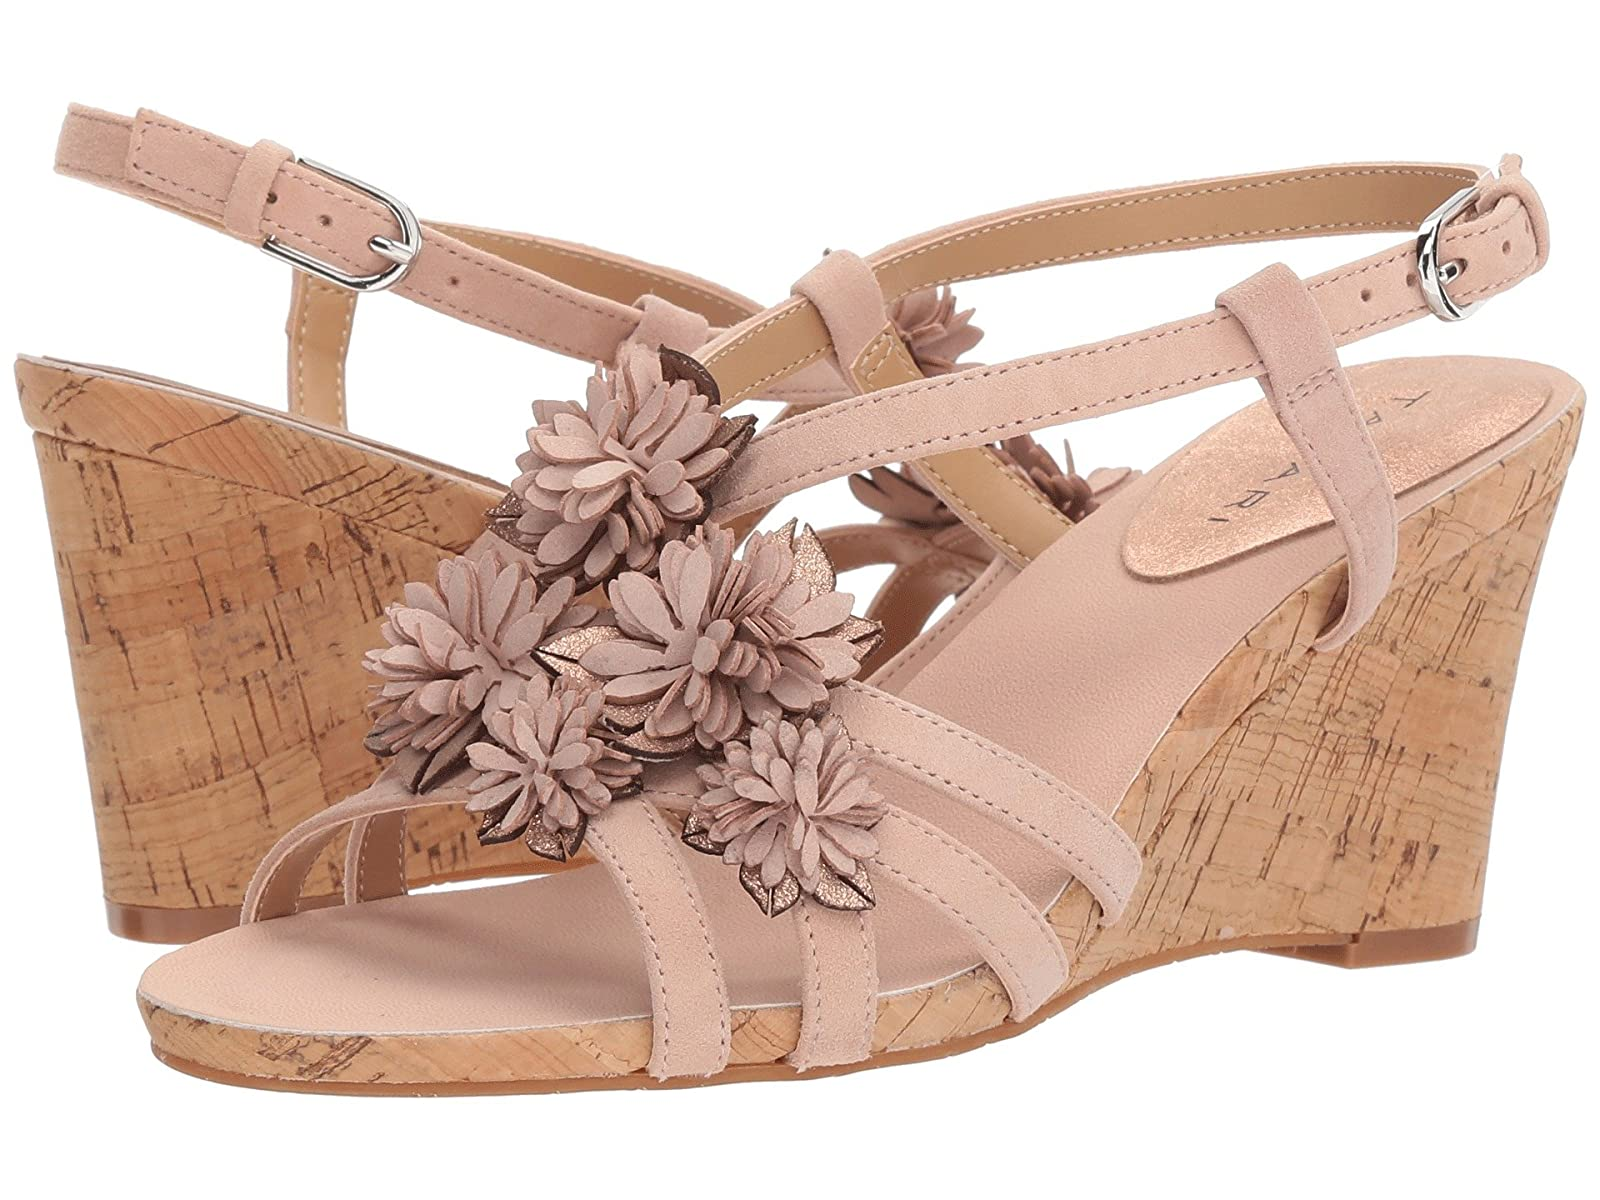 Tahari FavorCheap and distinctive eye-catching shoes